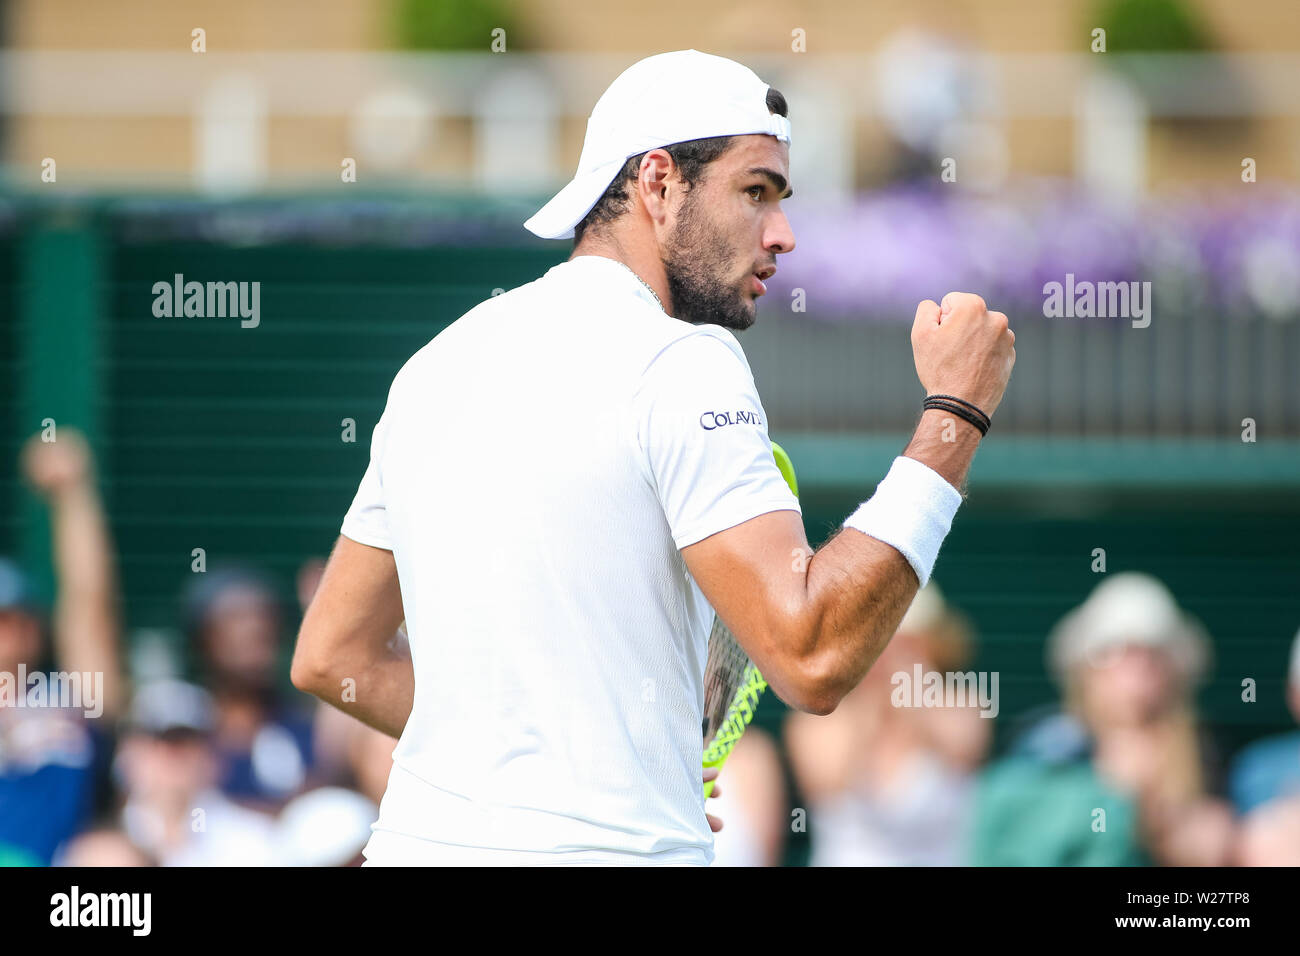 Wimbledon, London, UK. 6th July, 2019. Matteo Berrettini of Italy reacts during the men's singles third round match of the Wimbledon Lawn Tennis Championships against Diego Schwartzman of Argentina at the All England Lawn Tennis and Croquet Club in London, England on July 6, 2019. Credit: AFLO/Alamy Live News - Stock Image